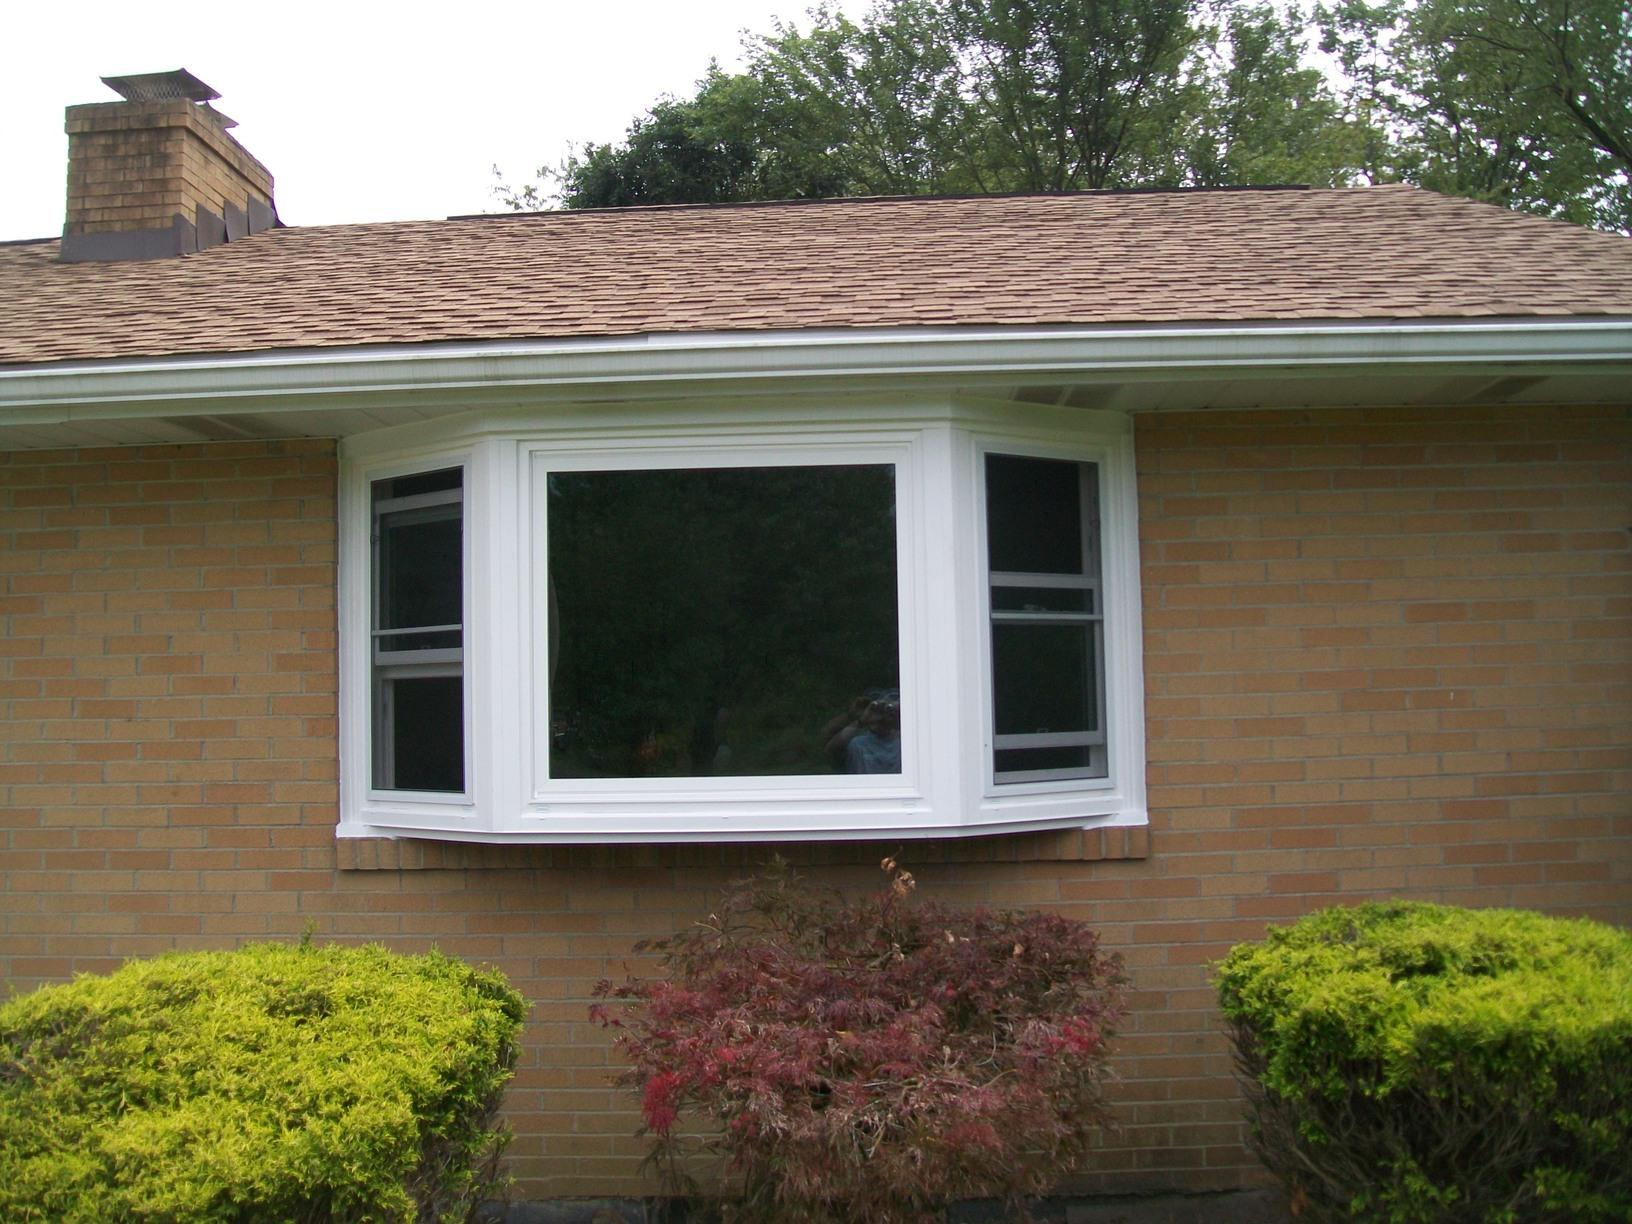 Old Aluminum Window converted into Beautiful Bay for Greensburg, PA clients! - After Photo